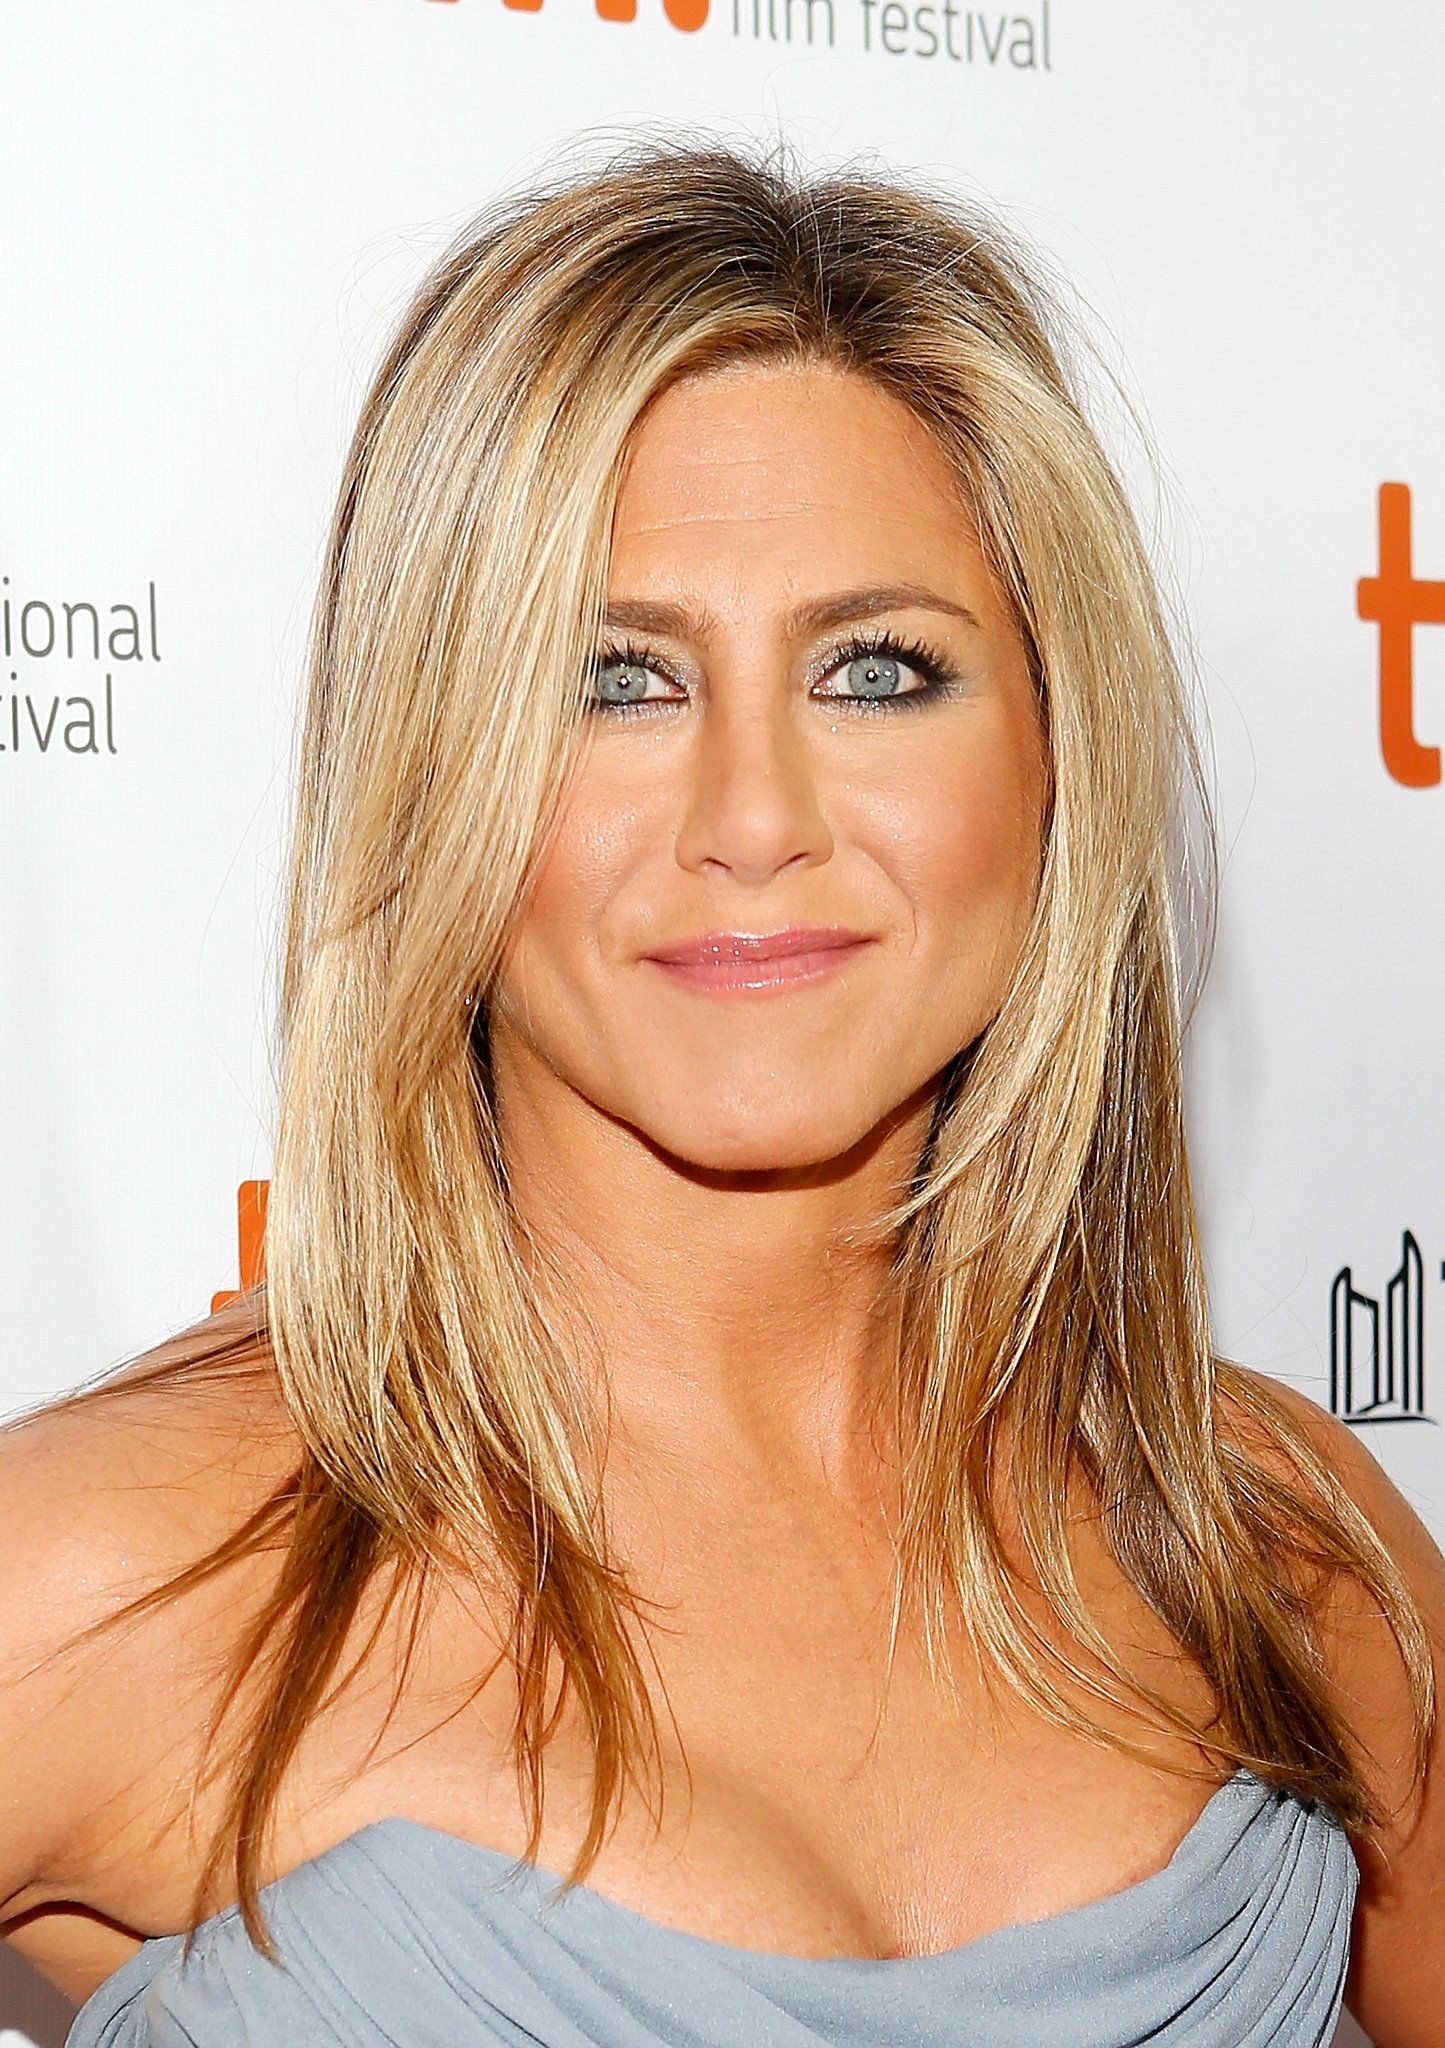 Pin For Later Youll Be Shocked By These Top Celebrities Quotes About Botox Jennifer Aniston